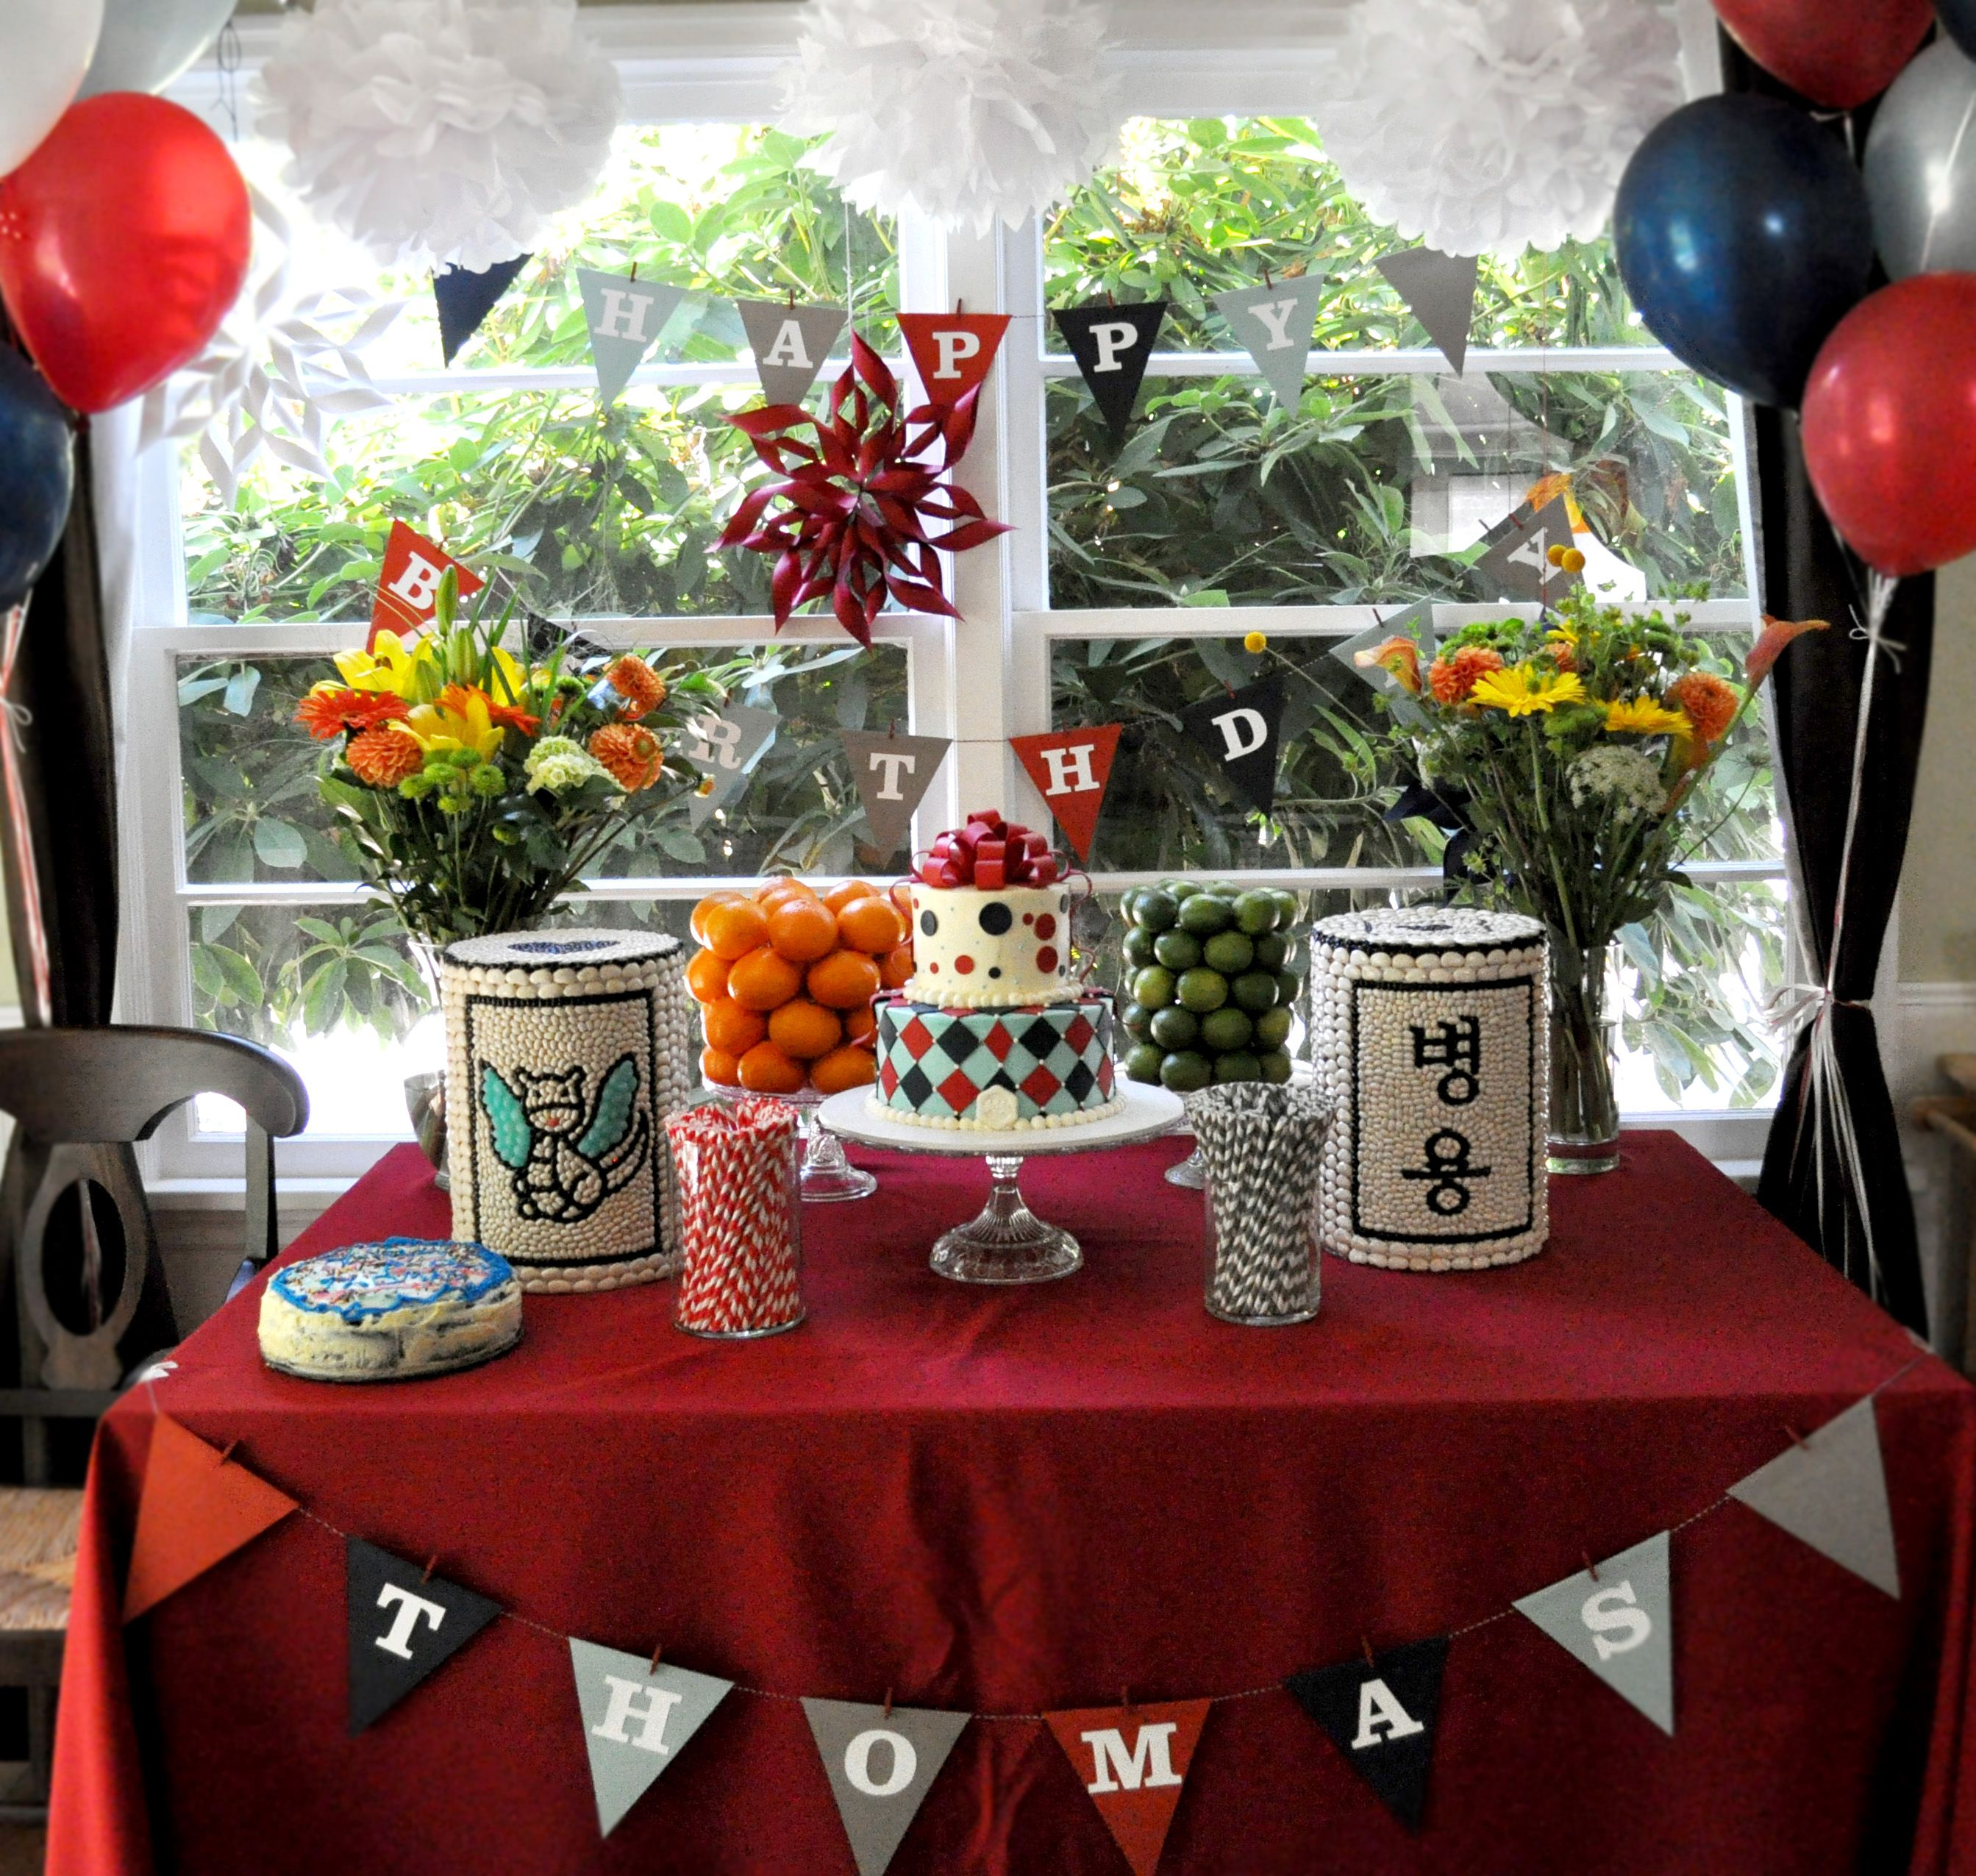 Birthday Table Presentation: Display Table For Korean First Birthday Party